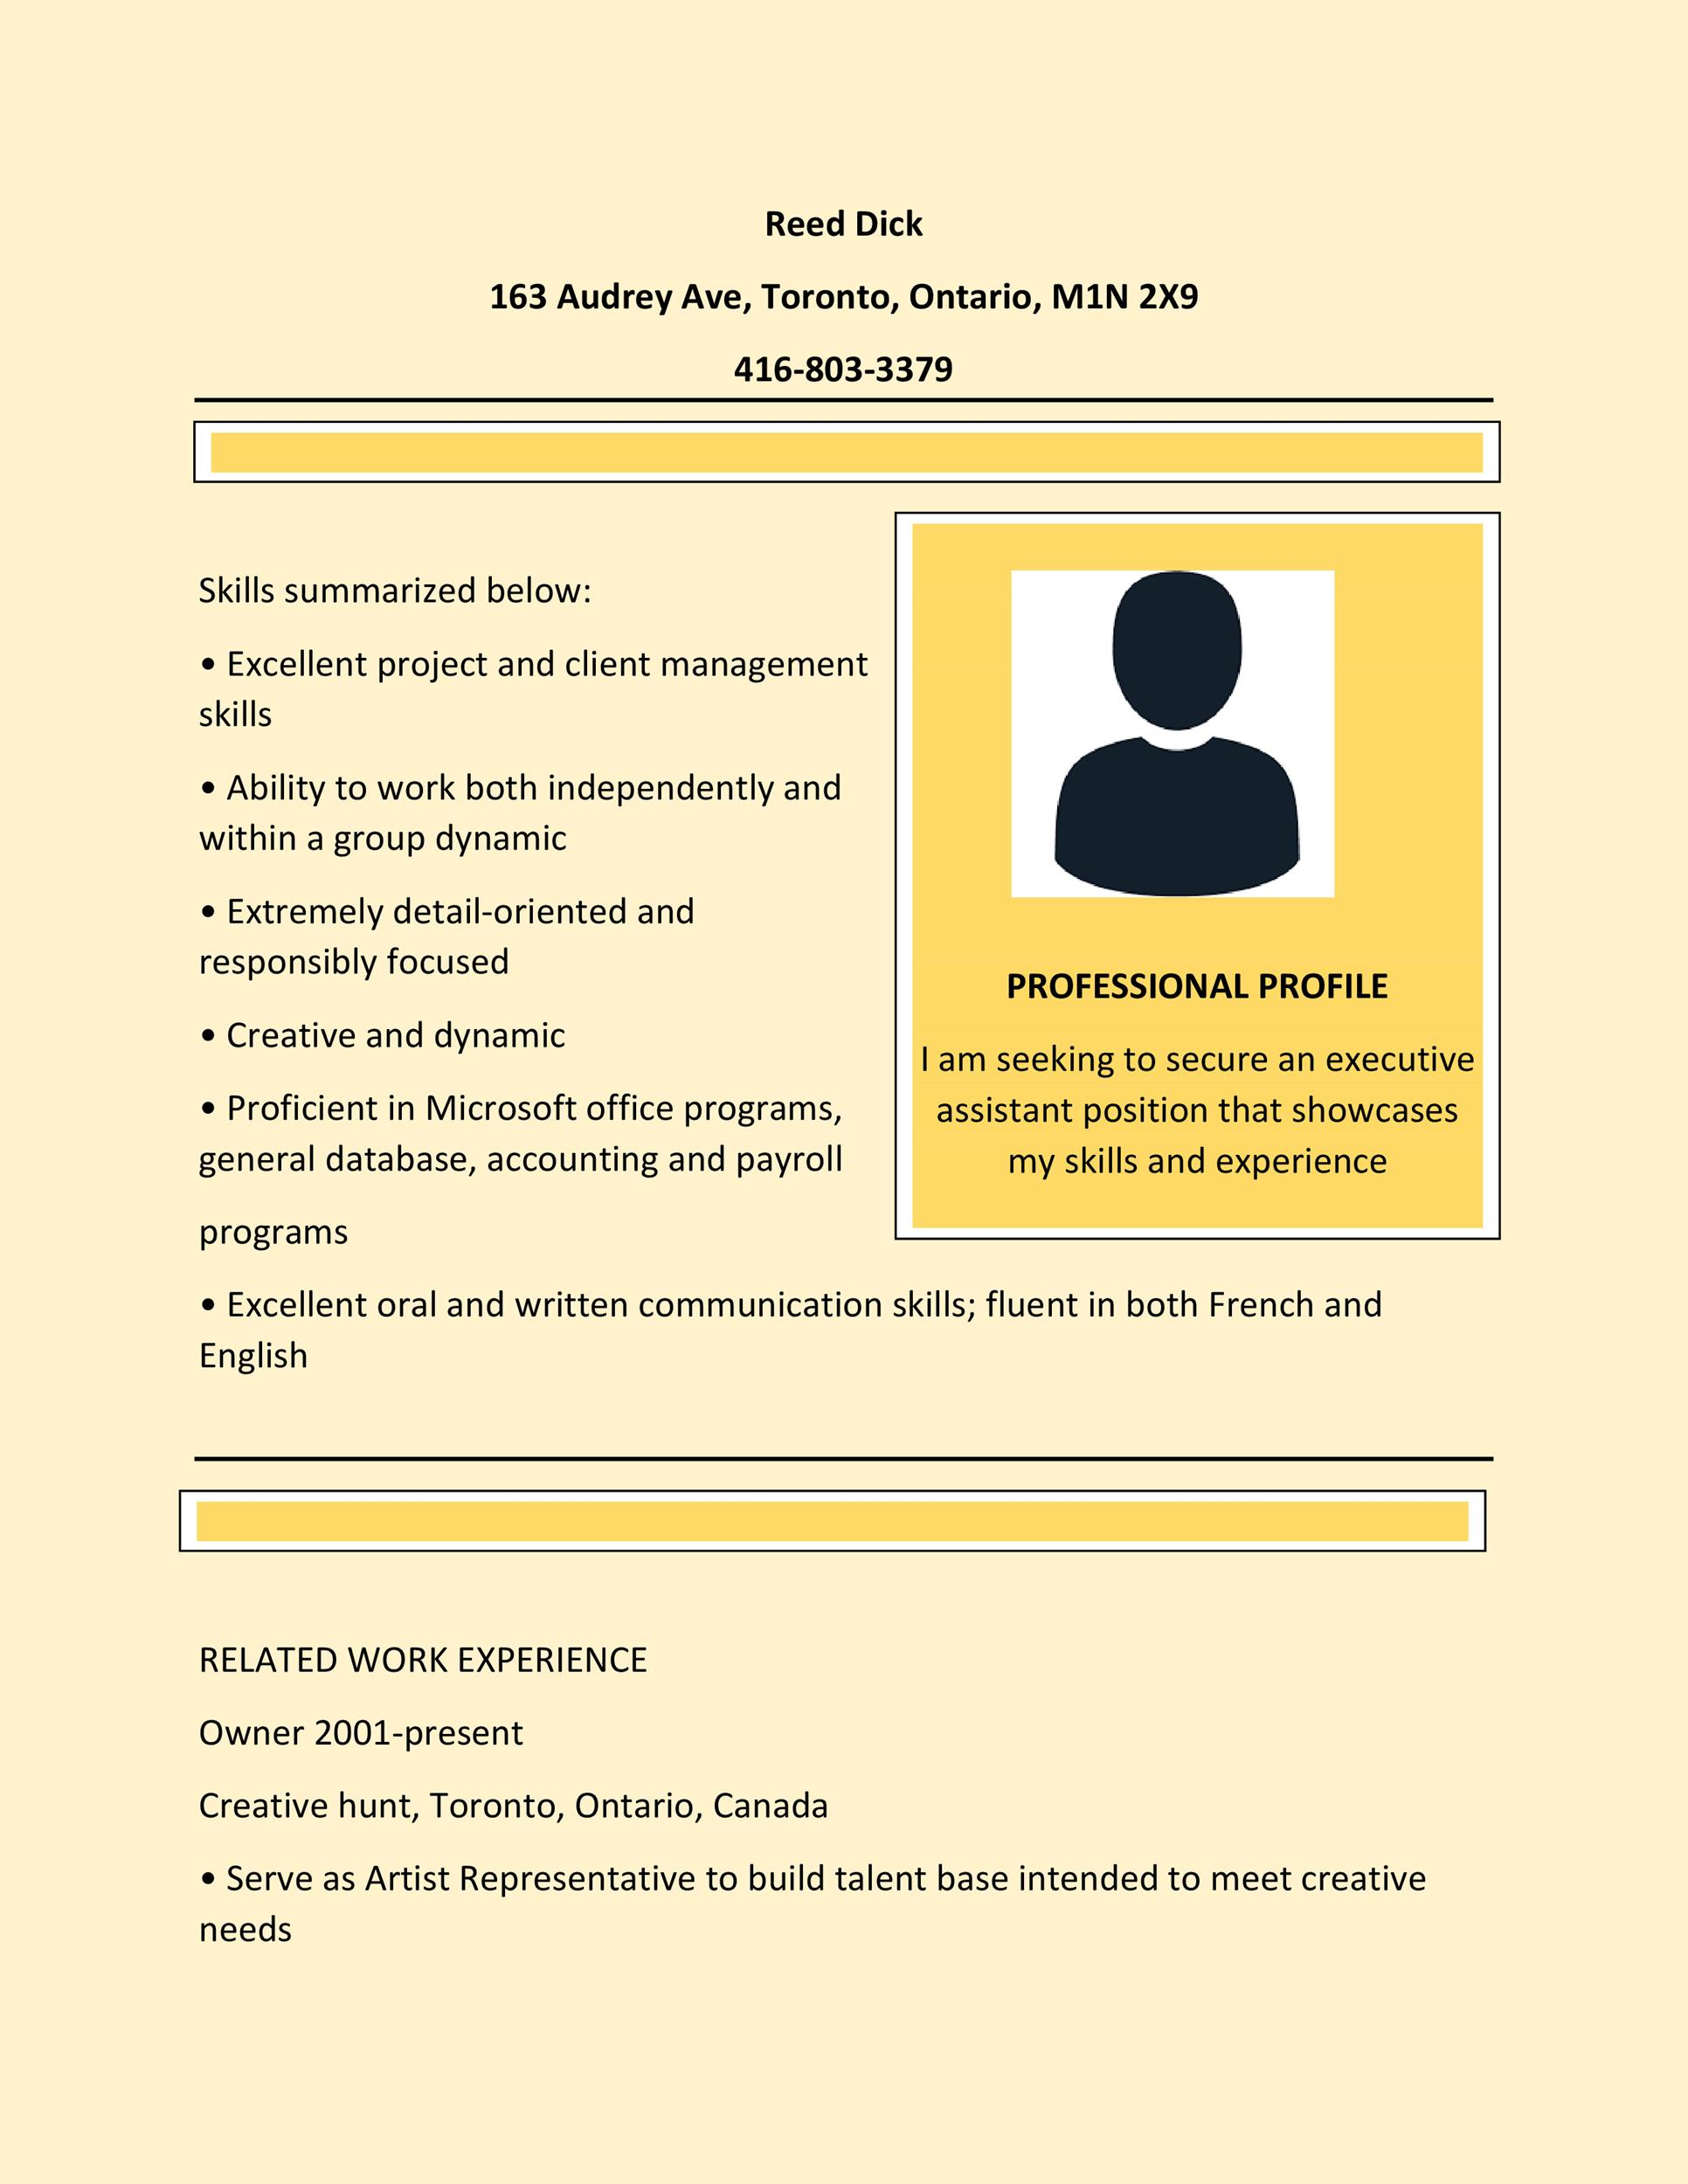 resume format best examples template free cna job duties starbucks barista field Resume Canadian Resume Template Free